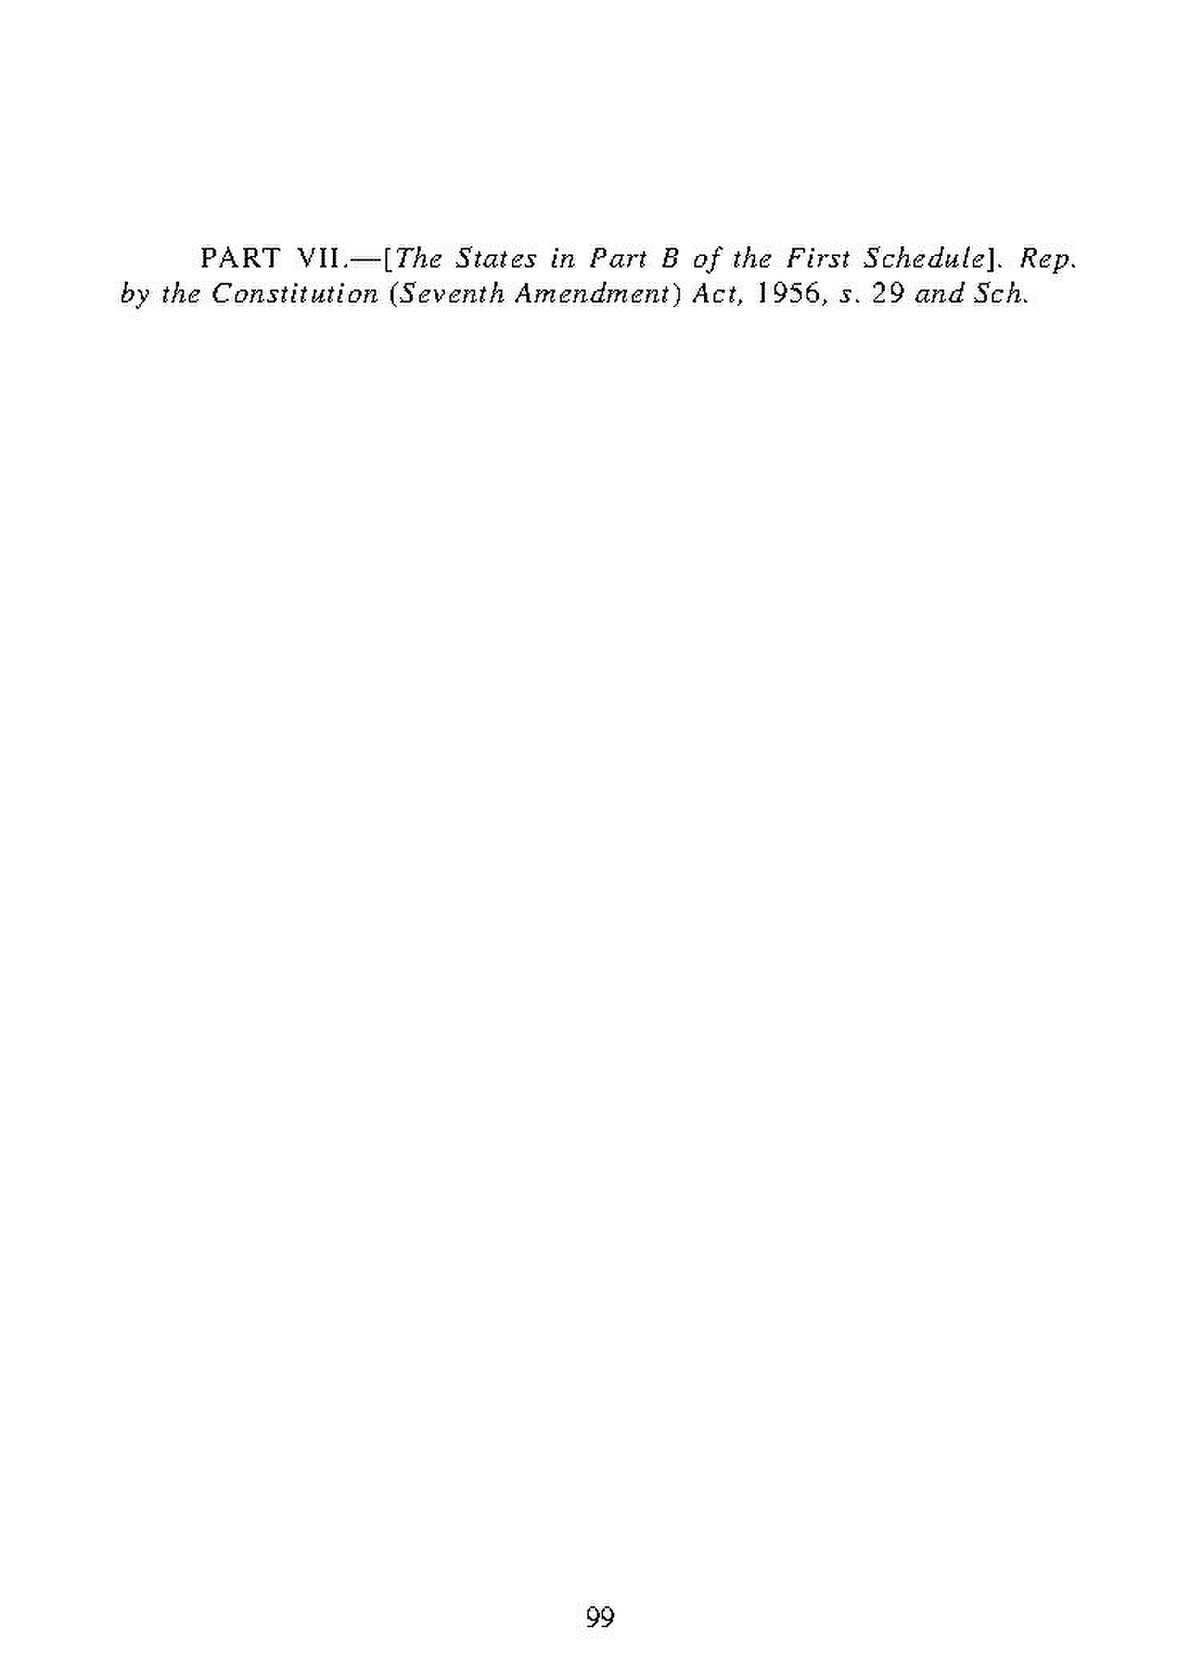 FileTHE CONSTITUTION OF INDIA PART 20.pdf   Wikimedia Commons